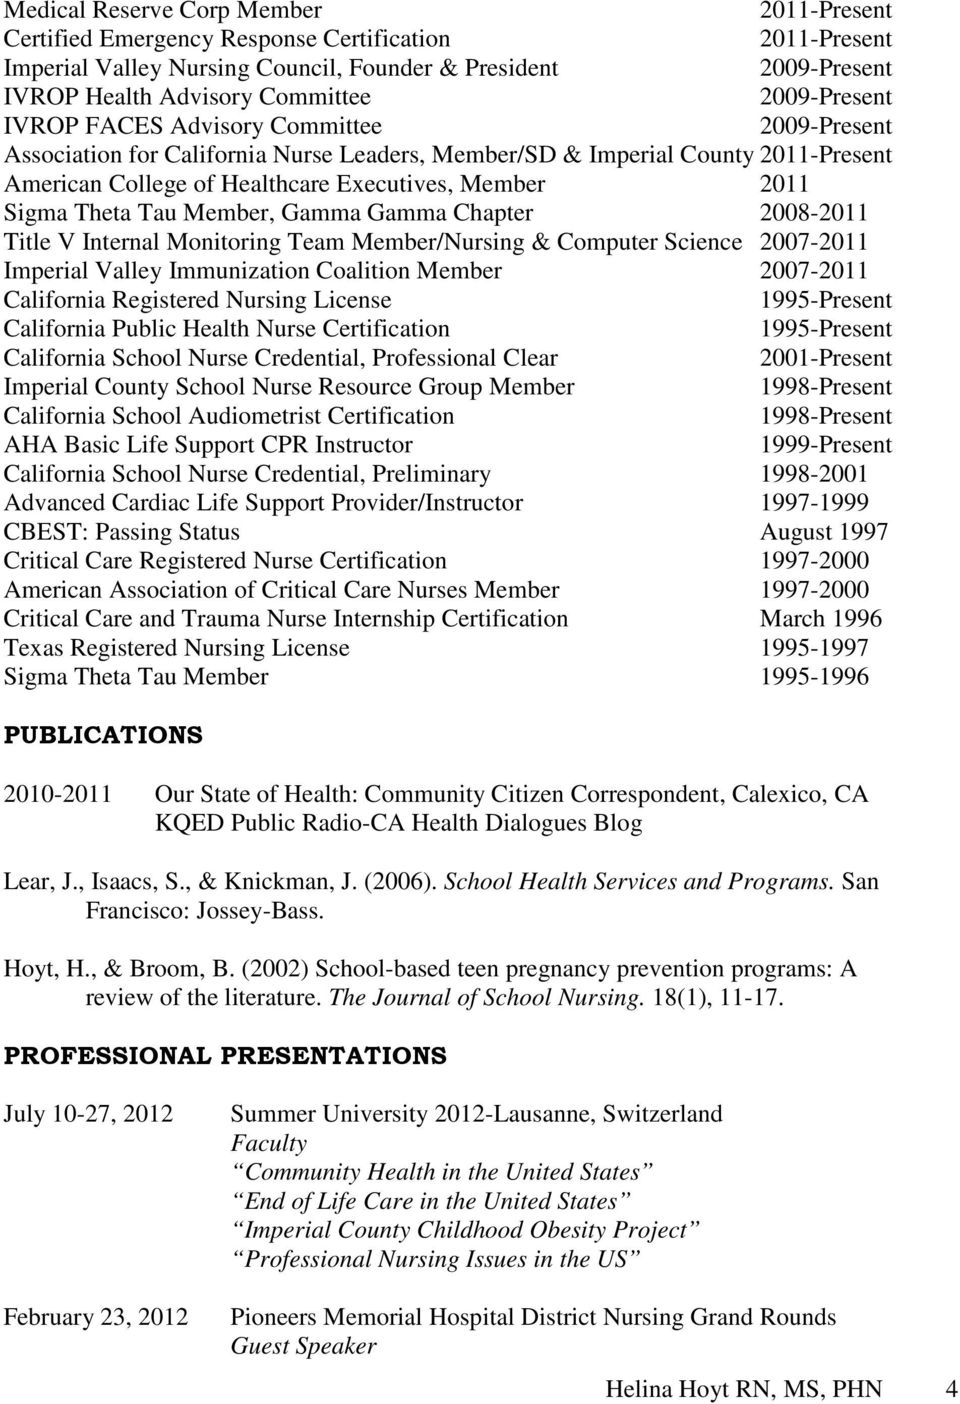 Chapter 2008-2011 Title V Internal Monitoring Team Member/Nursing & Computer Science 2007-2011 Imperial Valley Immunization Coalition Member 2007-2011 California Registered Nursing License